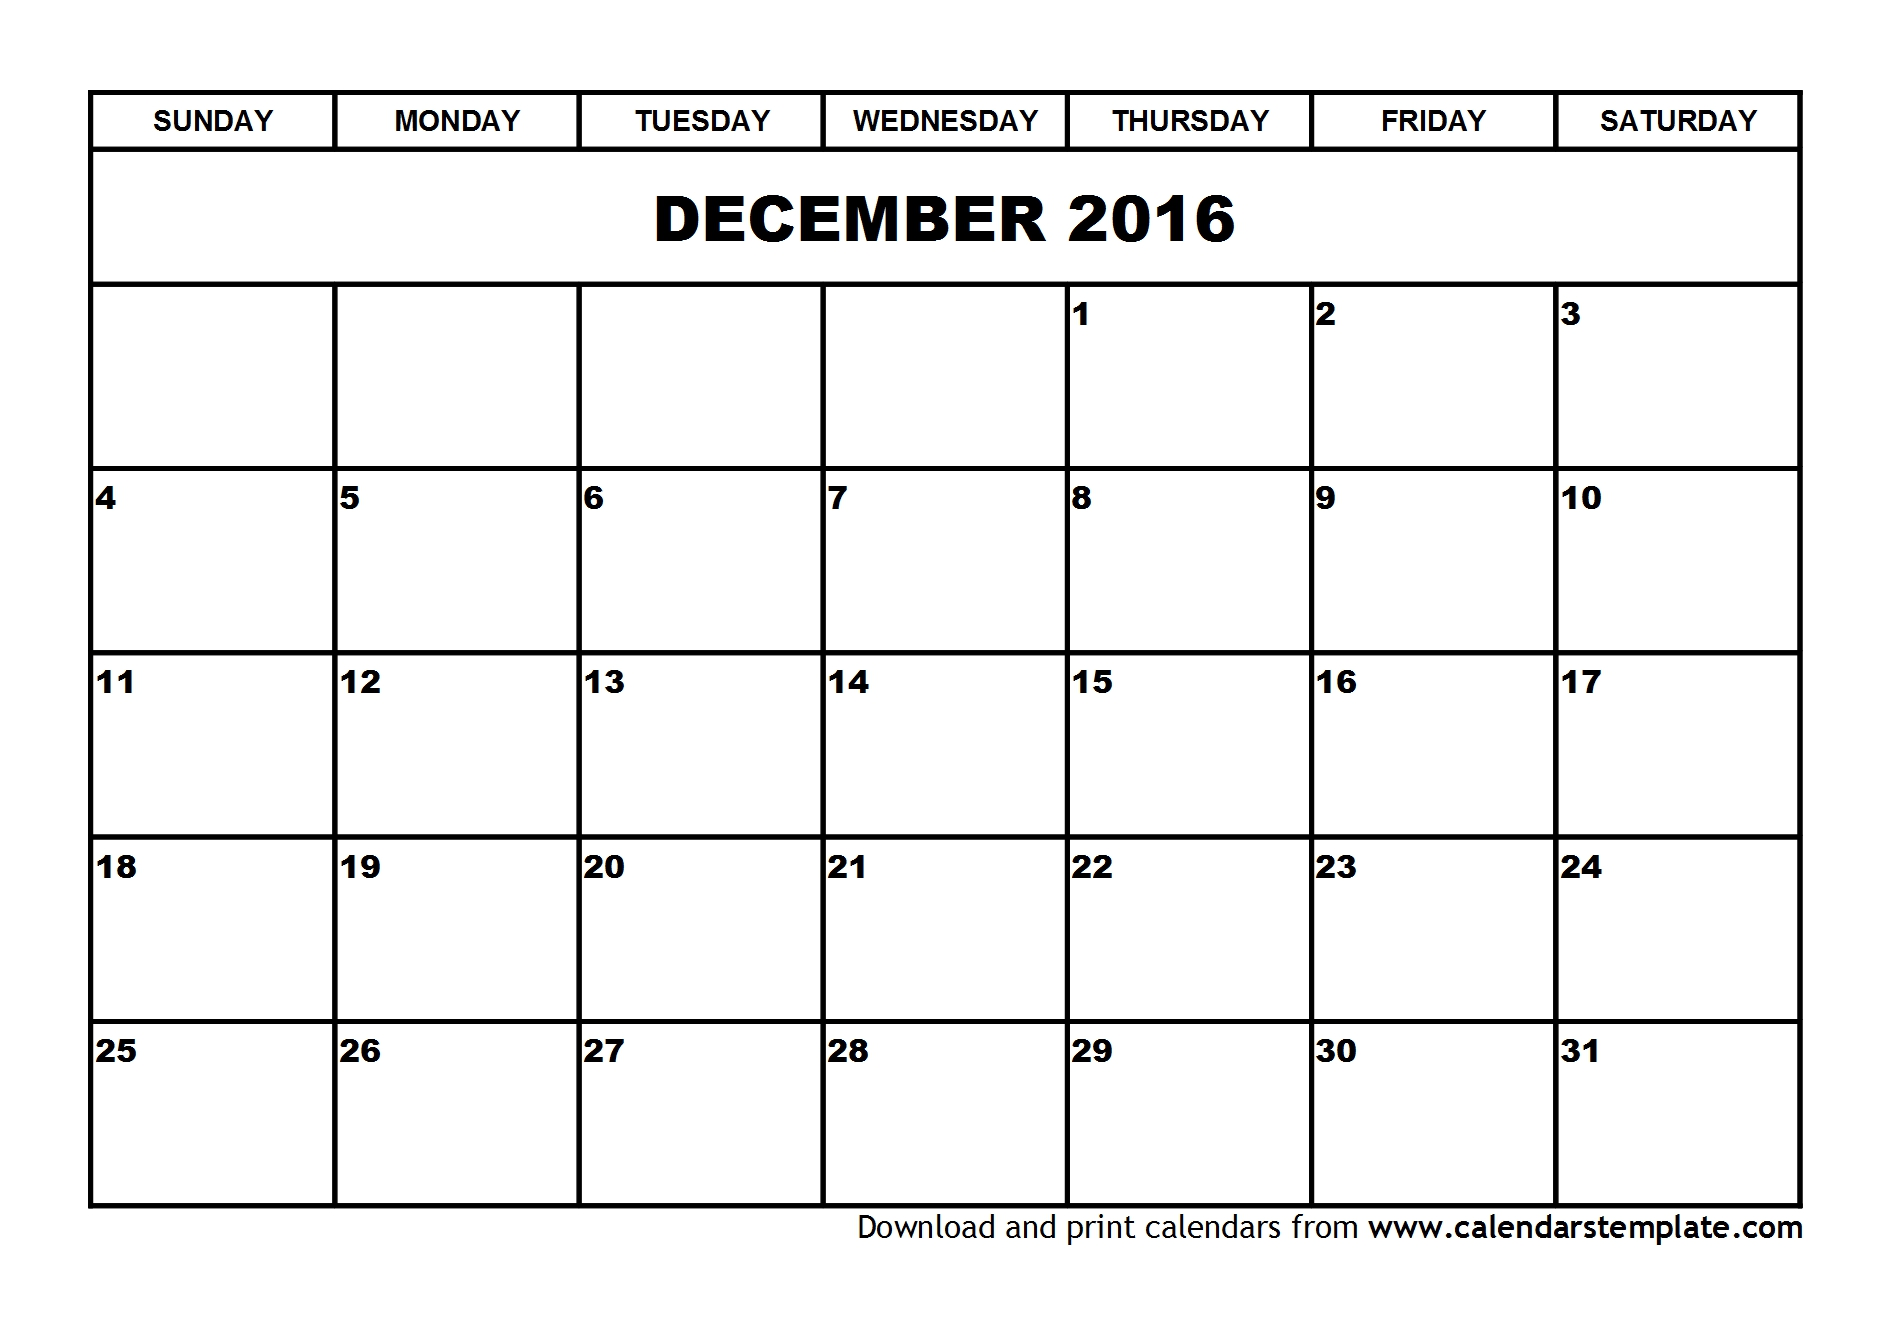 December calendar 2016 png black and white library December calendar 2016 - ClipartFest png black and white library